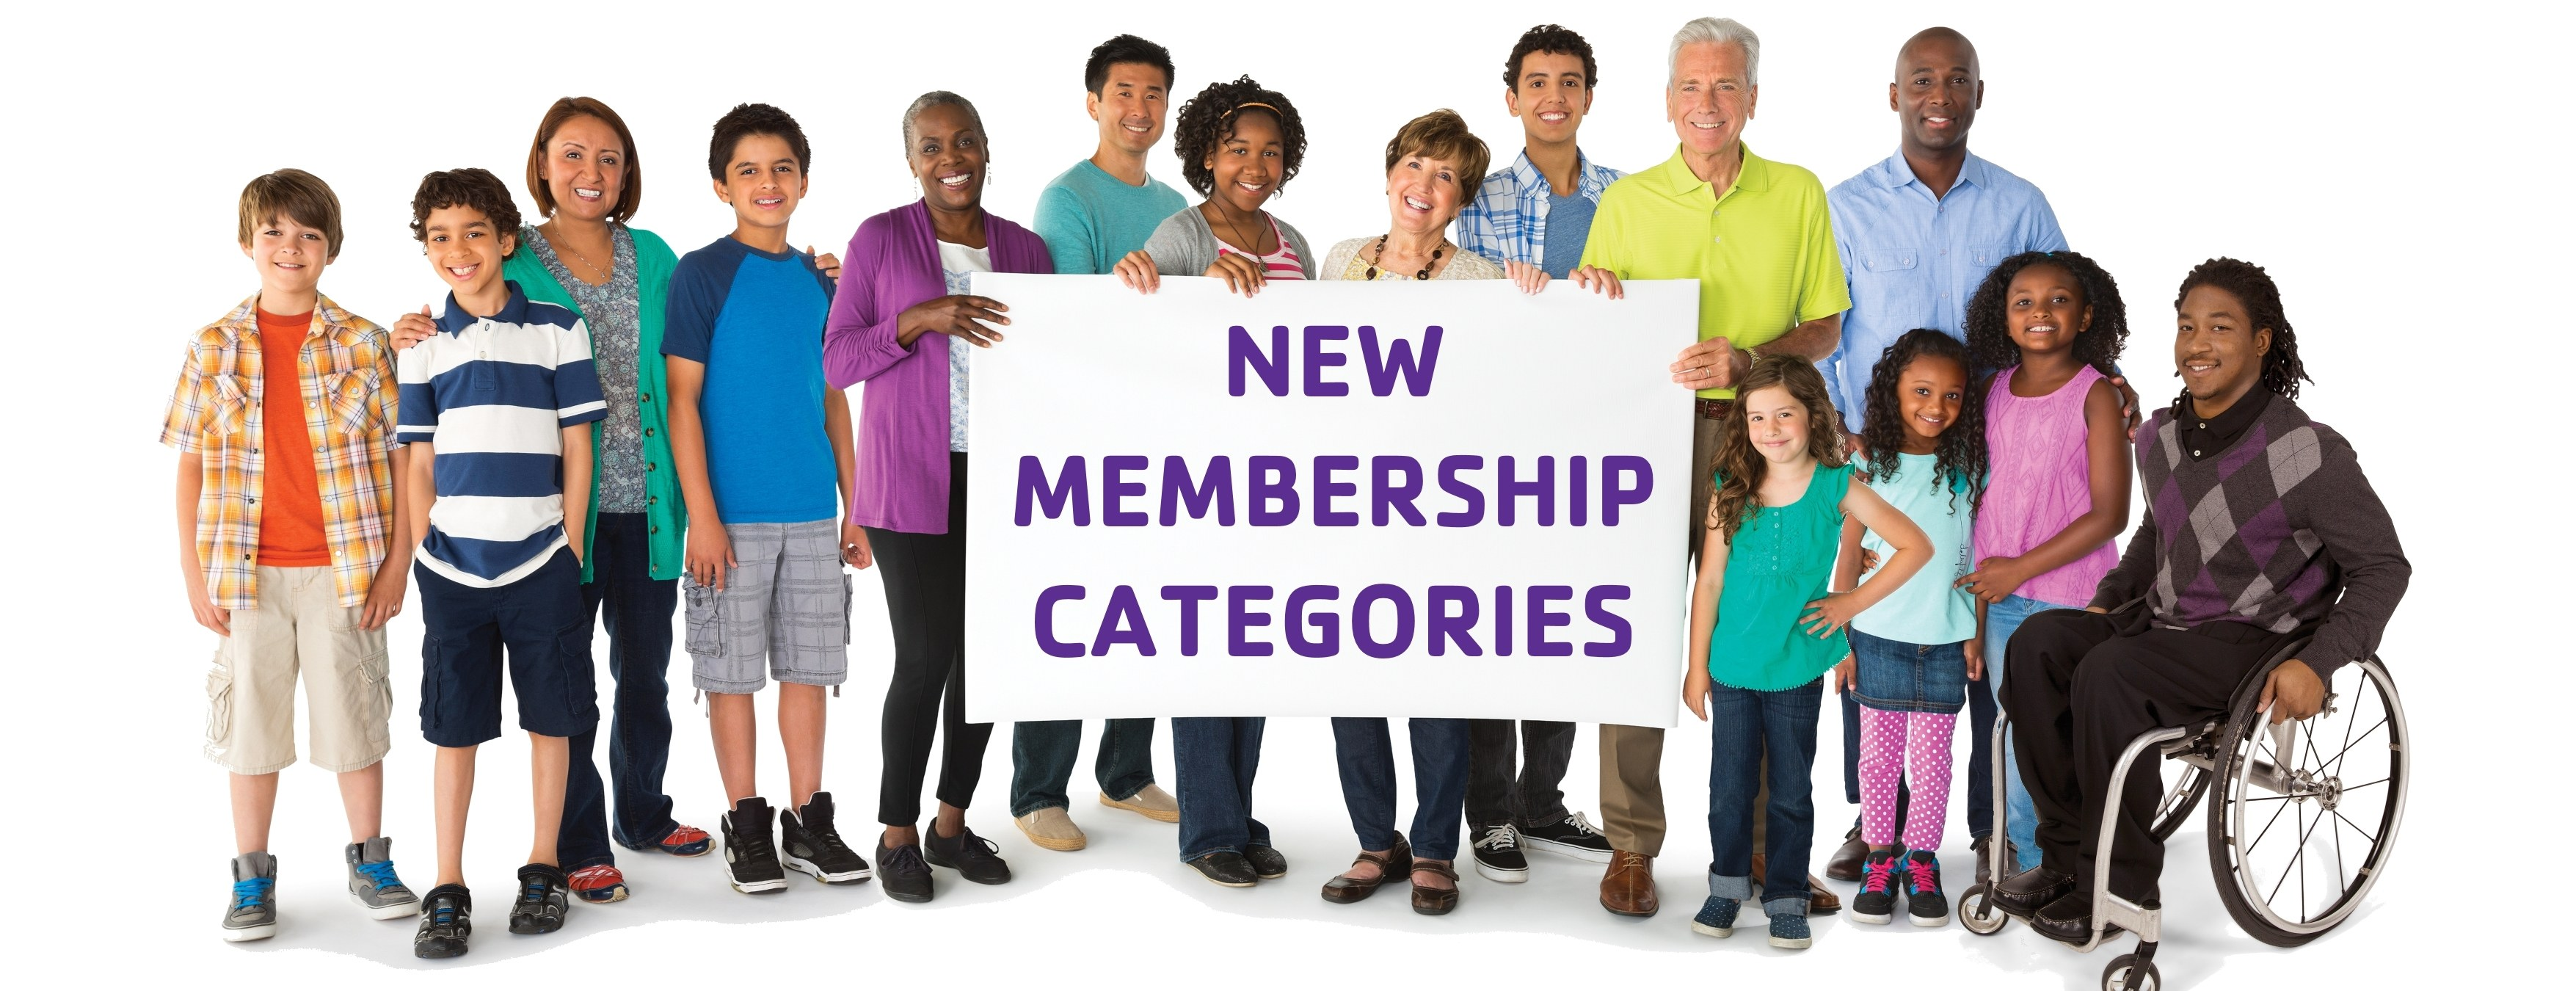 New-Membership-Categories-Slider-11.7x4.51